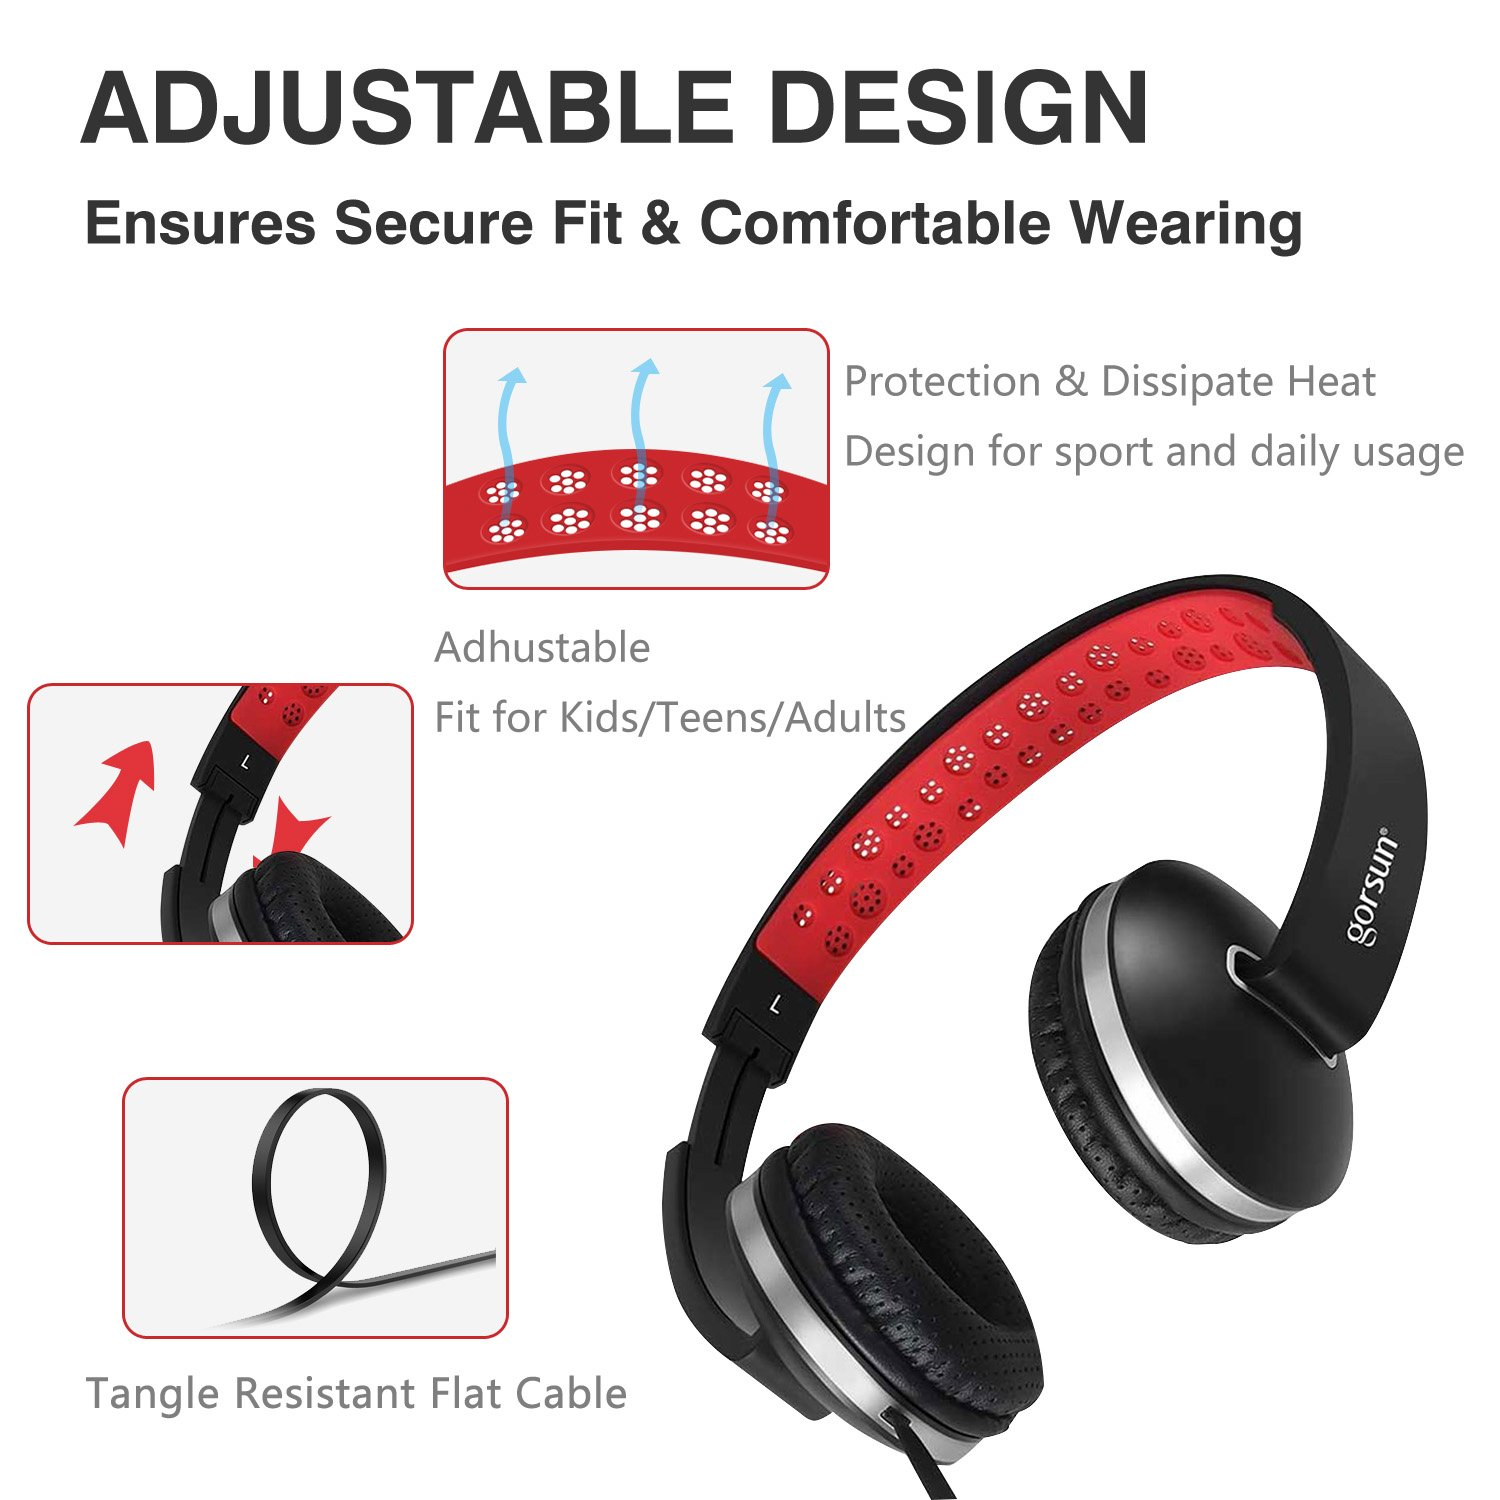 Over Ear Headphones, Lightweight Foldable Headphones with Microphone Stereo Bass Adjustable PC Headset Wired Flat Cord Headphone with Volume Control for Sport Workout Gym for Smartphones Laptop by Fujack (Image #3)